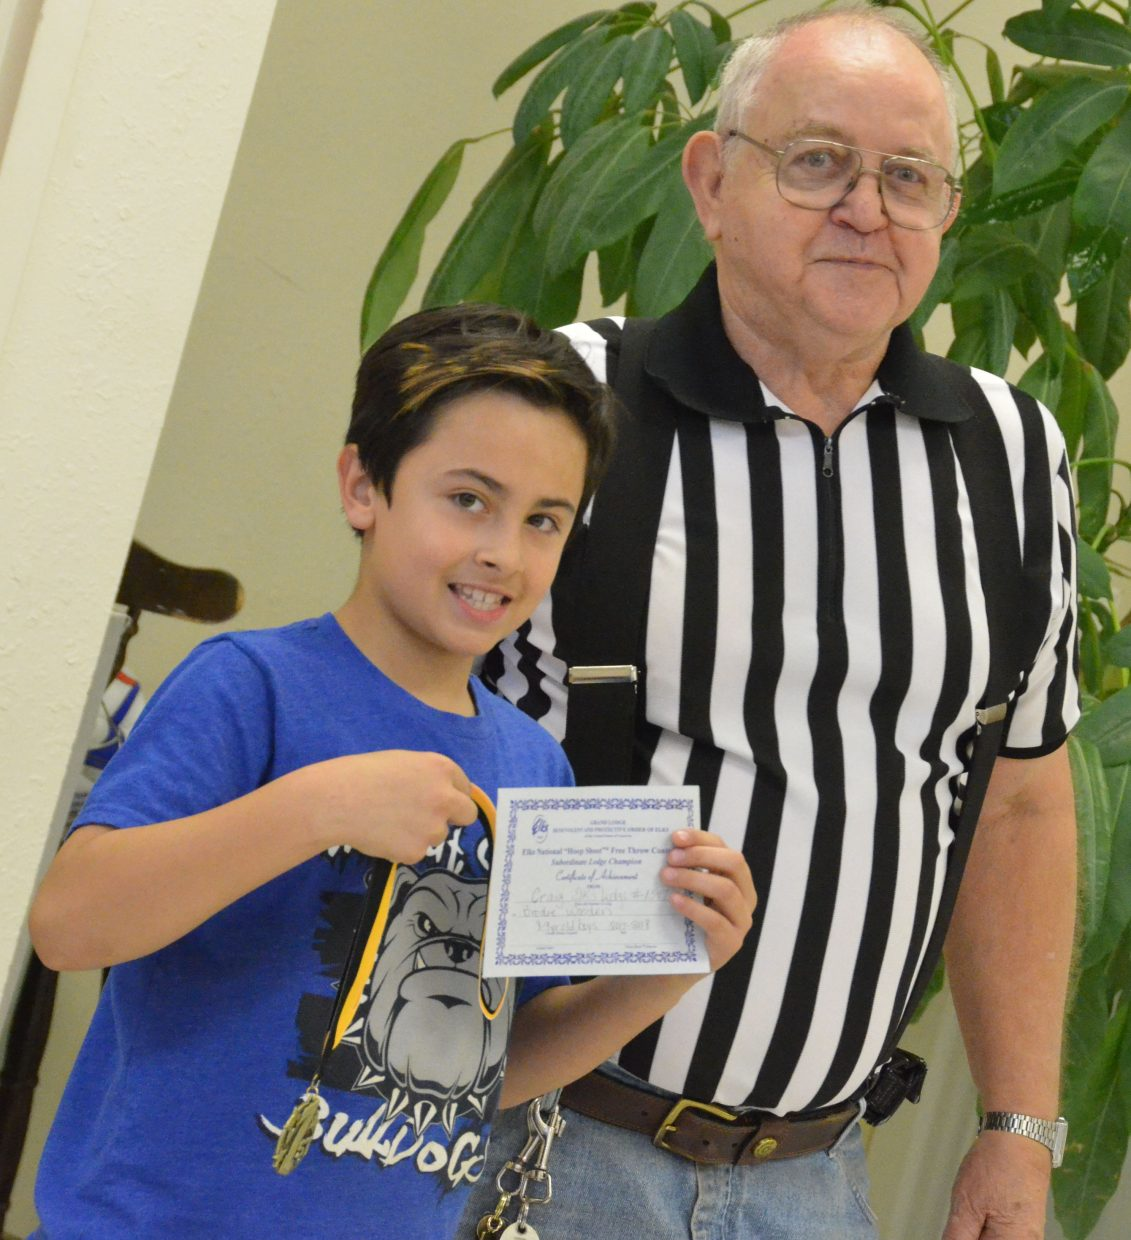 Frank Sadvar provides Brodie Wooden his first-place medal as the local winner of 8- and 9-year-old boys winner of the Elks National Hoop Shoot Free Throw Contest.